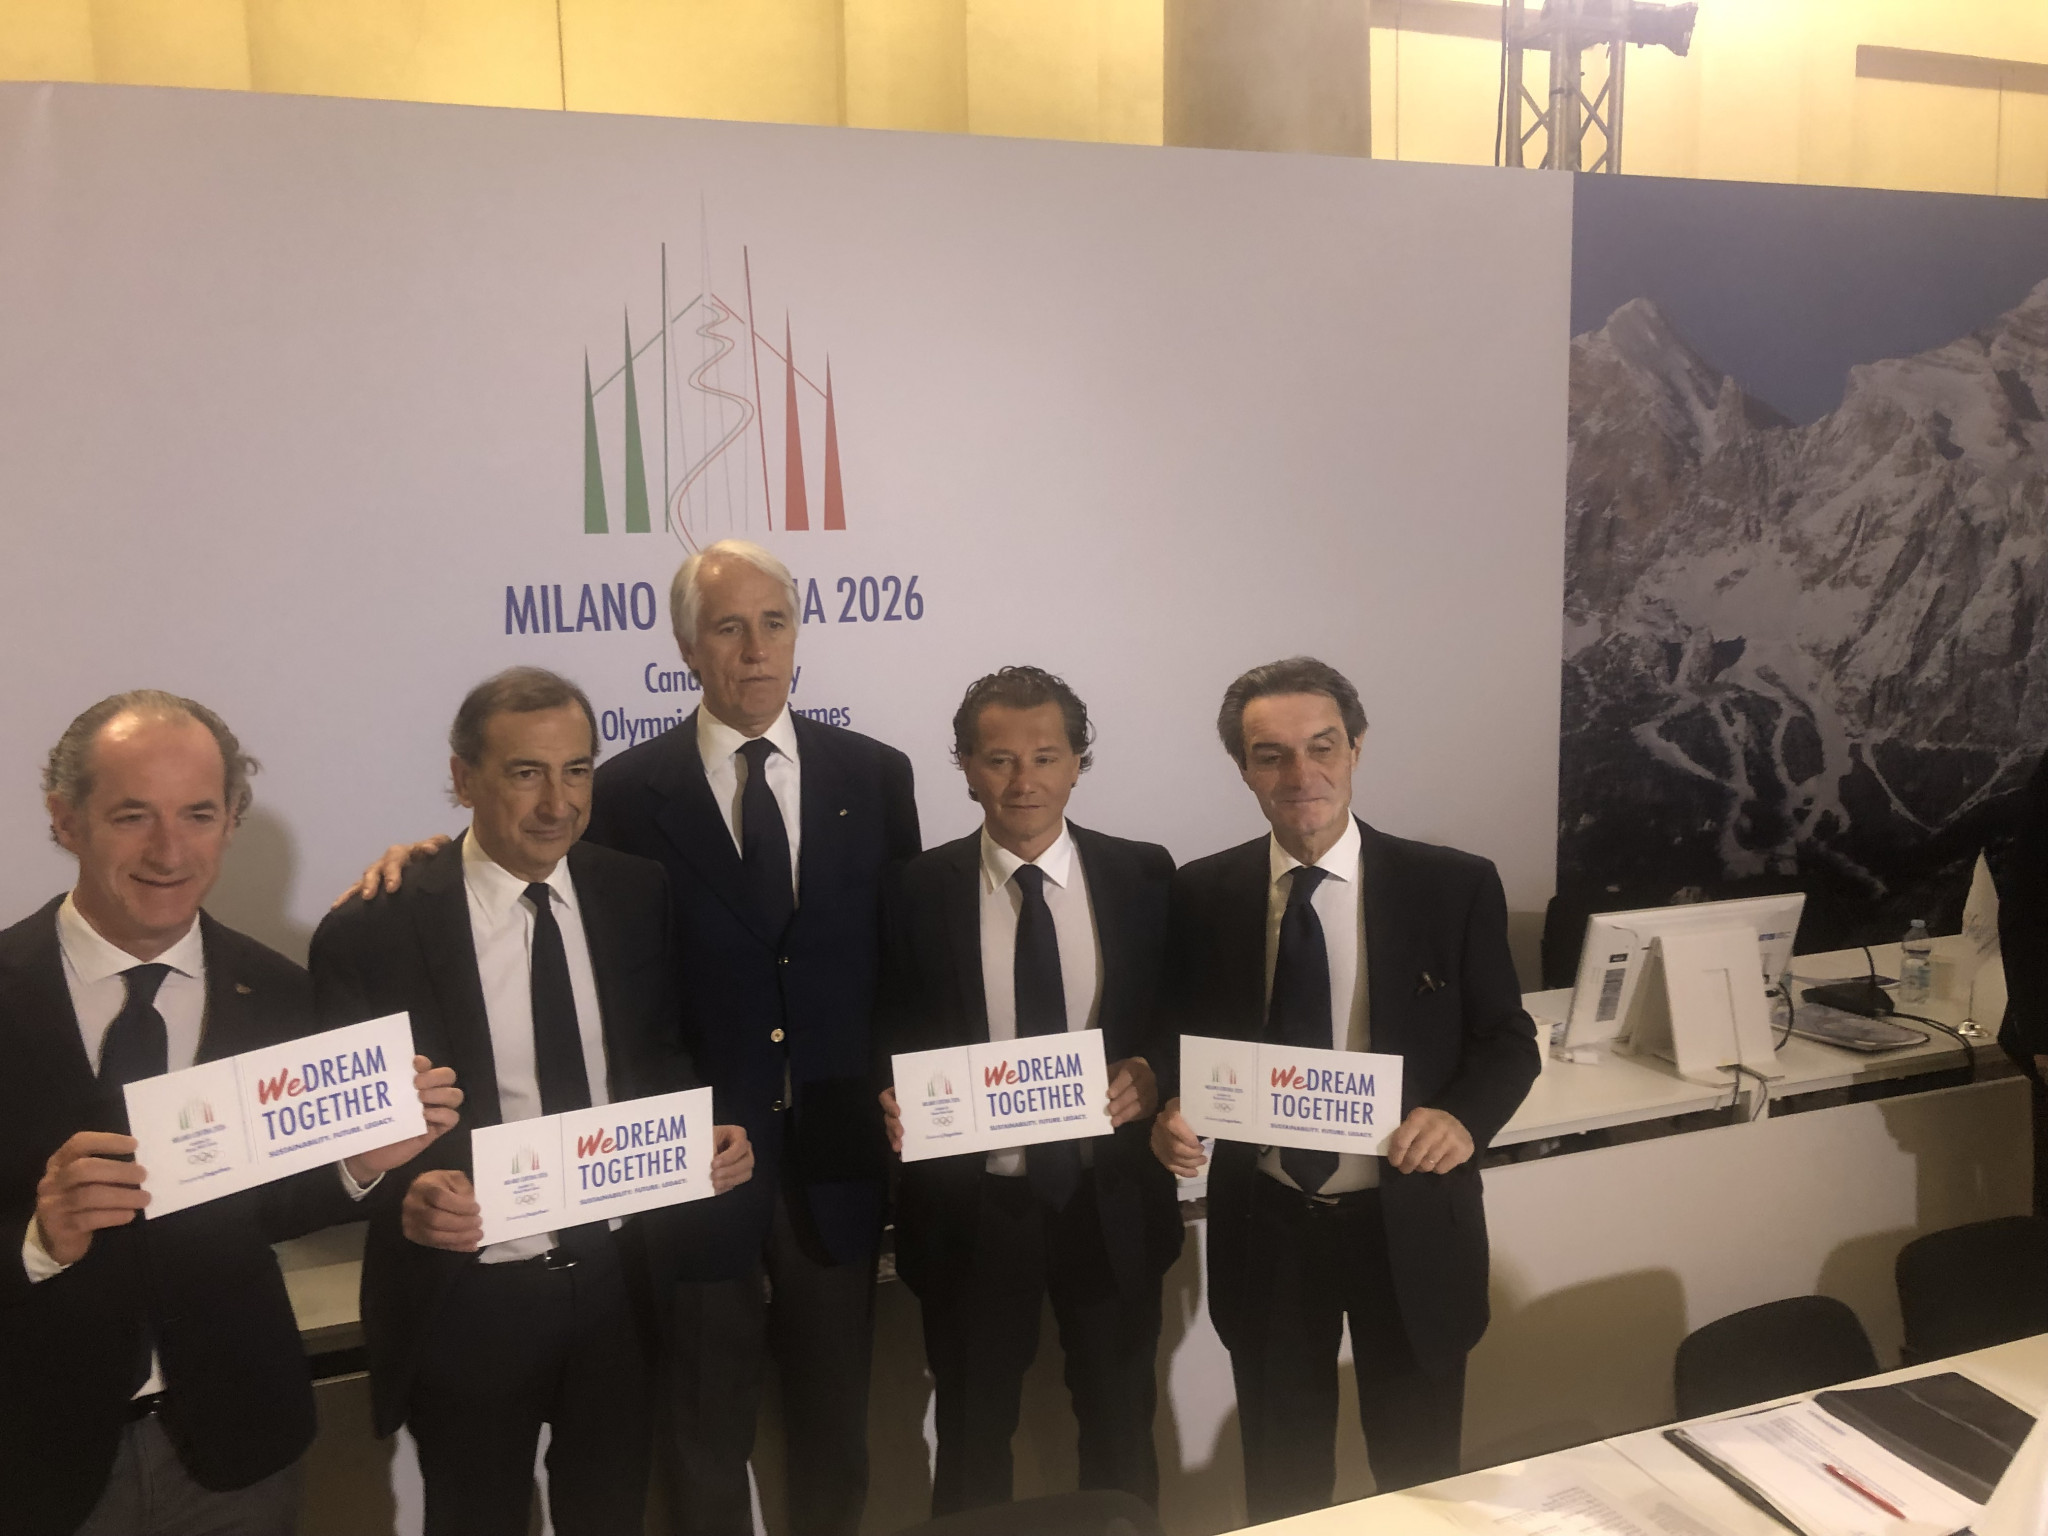 Italian National Olympic Committee President Giovanni Malagò, centre, is confident an IOC-commissioned poll to be published tomorrow will demonstrate how much support Milan Cortina 2026 has ©ITG